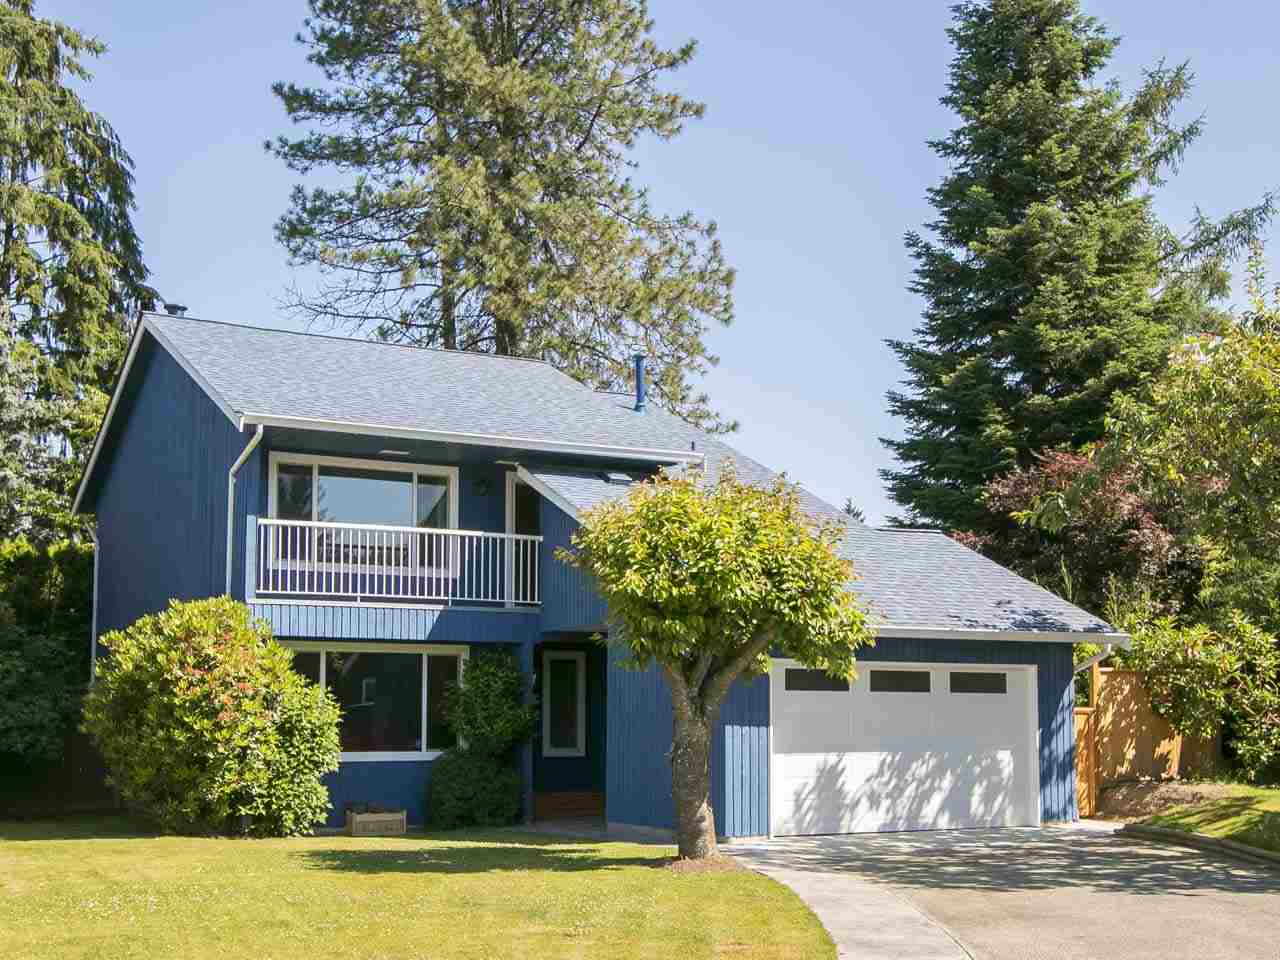 Fall in love with this bright and open 3 bed/2.5 bath home located on a quiet street in sunny Maple Ridge. Step into your home and relax in the large living room with cozy fireplace or cook and entertain in your gourmet kitchen with adjacent dining and family room. Huge picture windows allow for tons of light with patio door opening up to the large patio with even bigger backyard surrounded by trees for maximum privacy. On the 2nd level you find 2 ample sized bedrooms plus master bedroom with large closet and ensuite. Bonus: Newer roof and windows, new hotwater tank replaced in 2016 & brand new garage. Don't miss out on this stunning family home in a fantastic neighbourhood. OPEN HOUSE SAT & SUN, JULY 15 & 16, 2-4PM